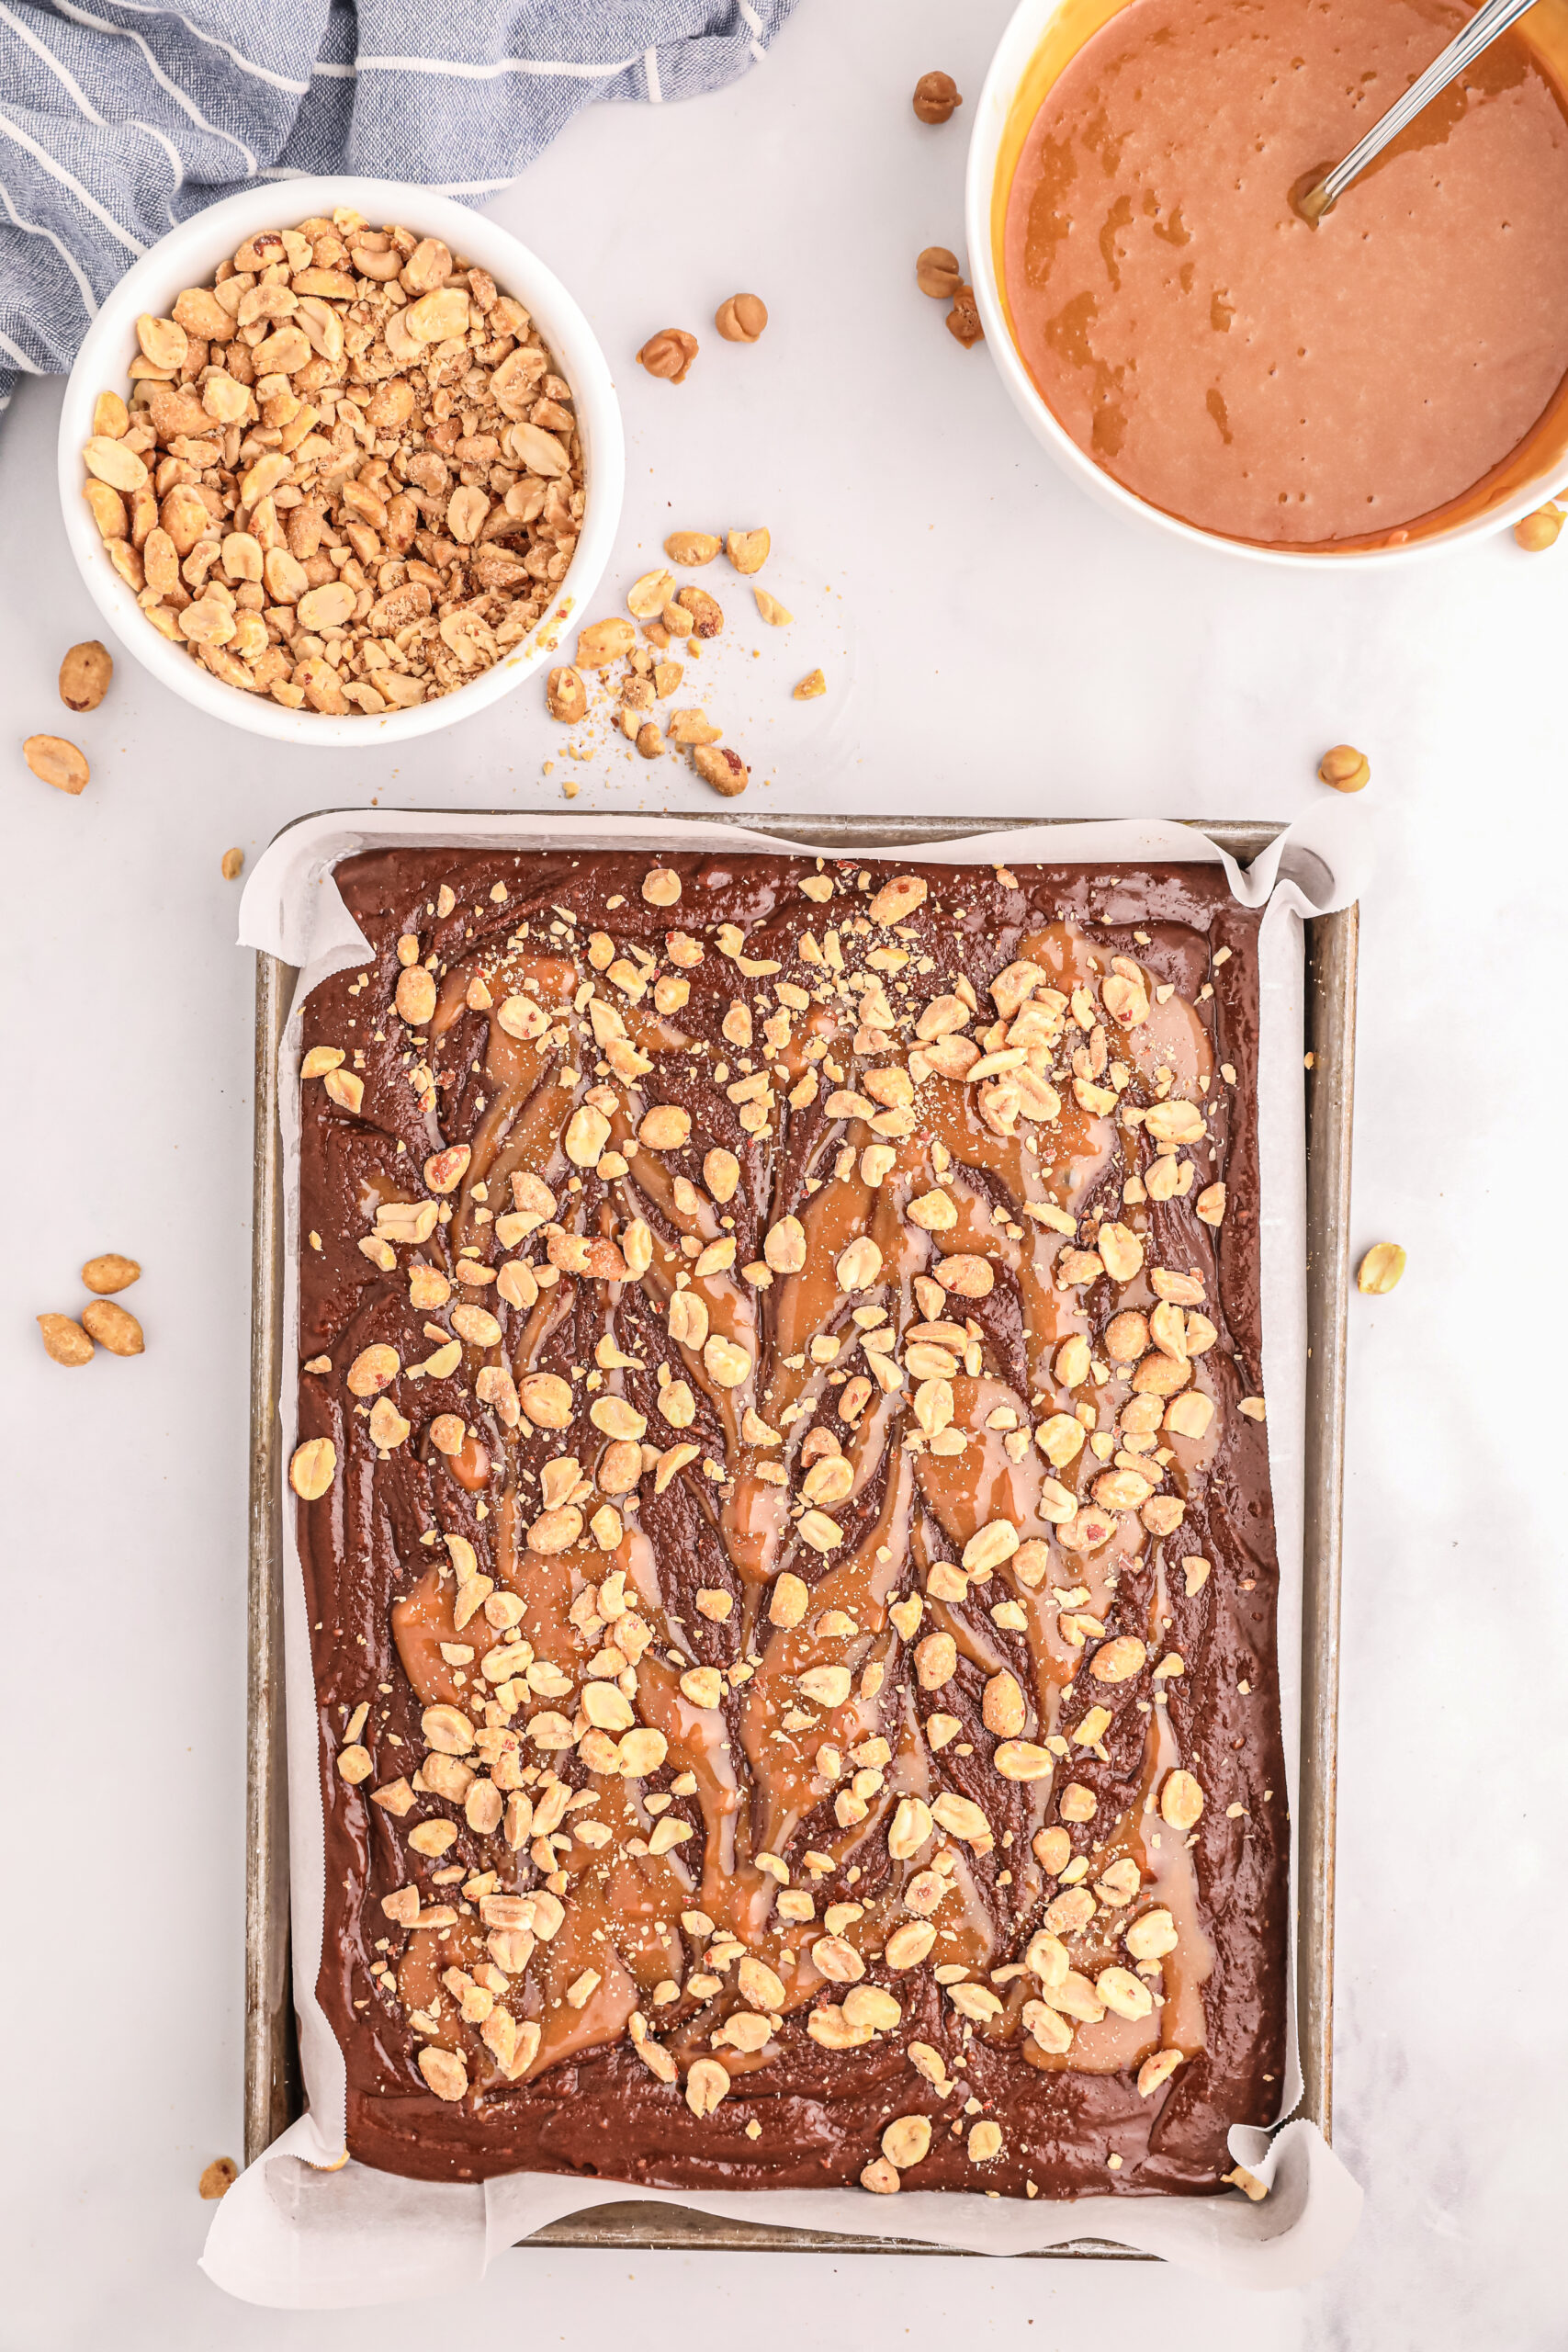 caramel swirl and peanuts topping a brownie batter in a sheet pan